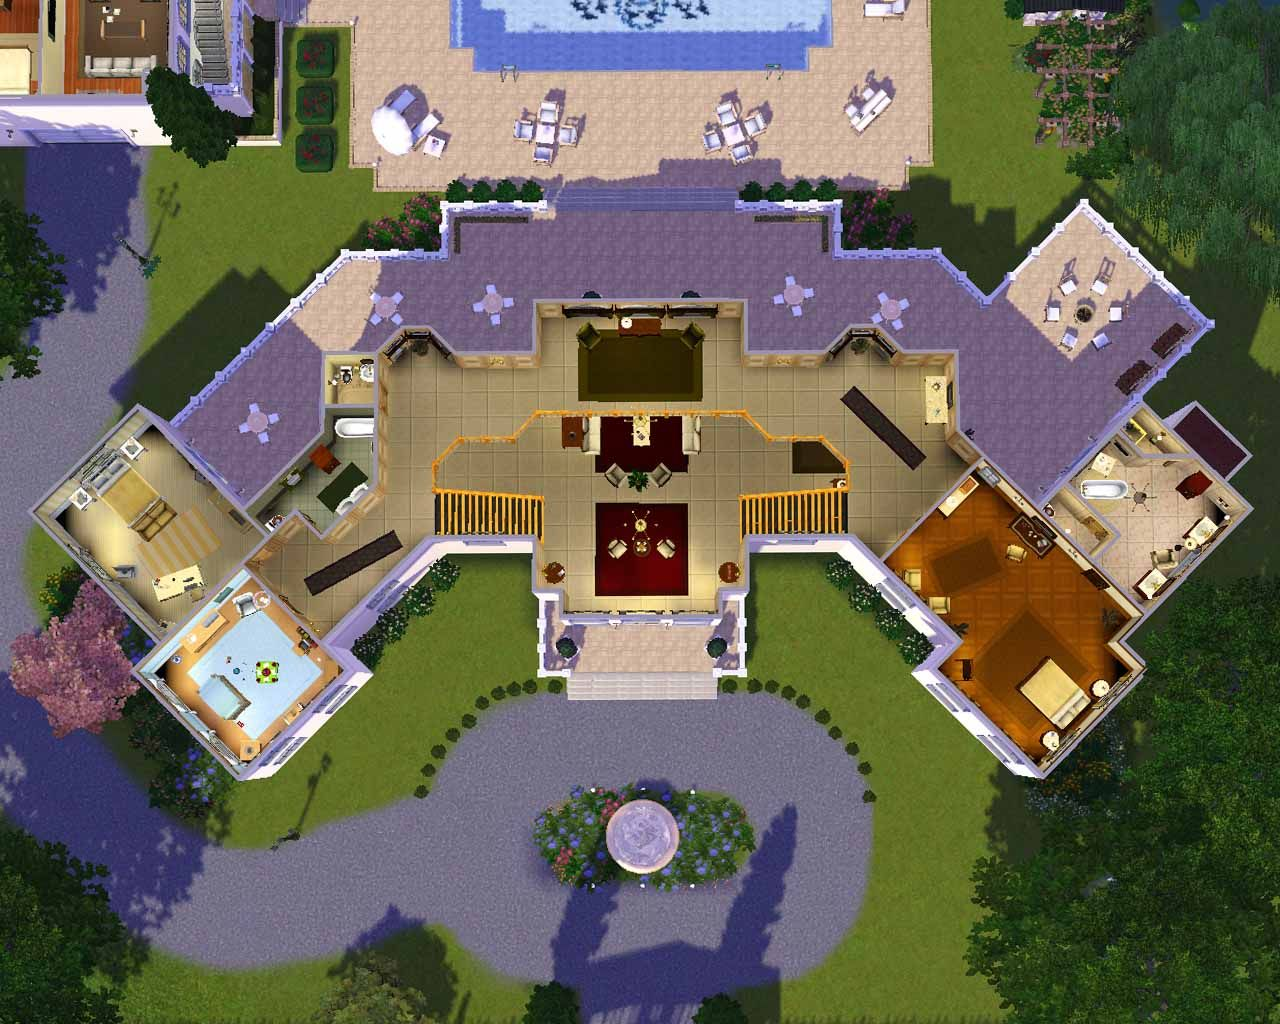 The sims 3 house designs google search idea the sims Mansion floor plans